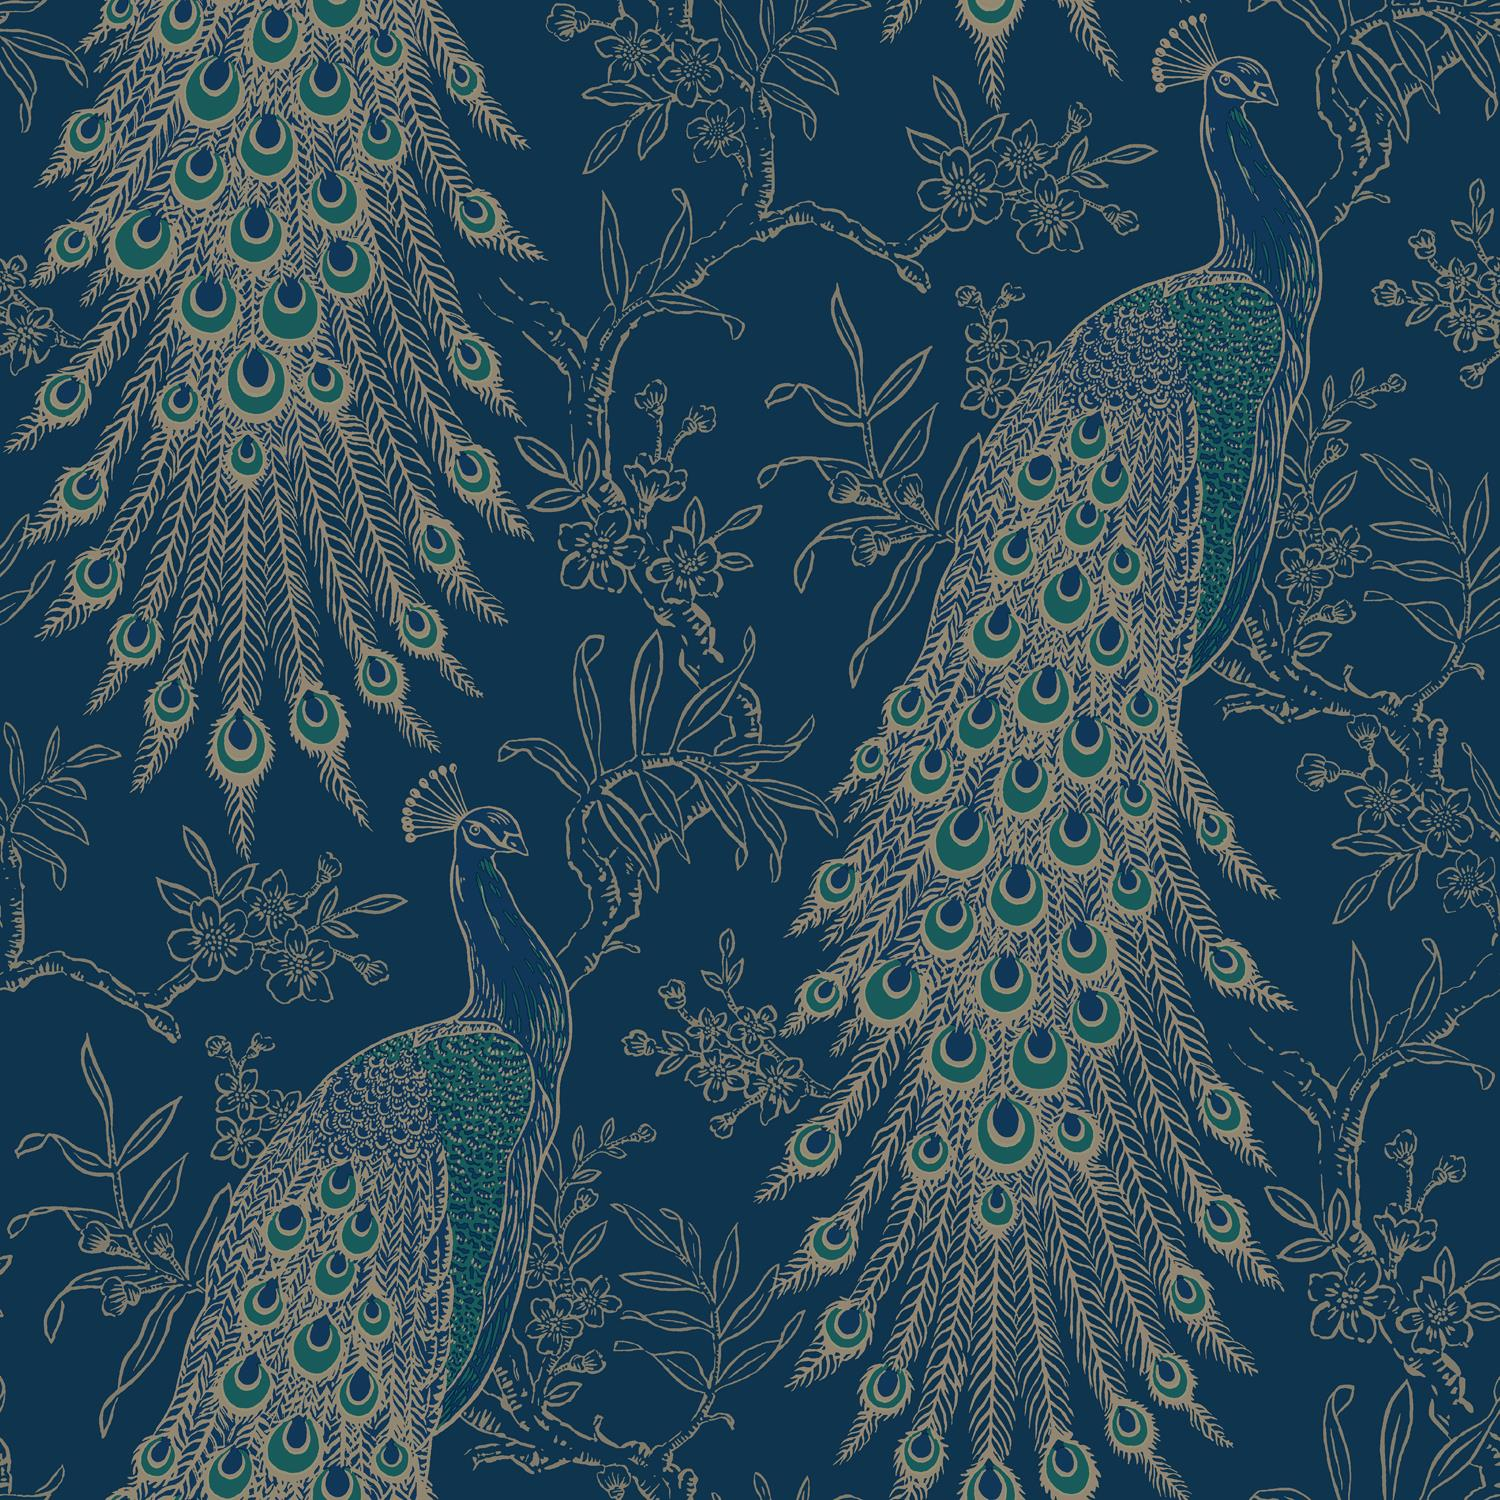 Peacock Wallpaper Navy Blue Gold Metallic Feather Floral Vintage